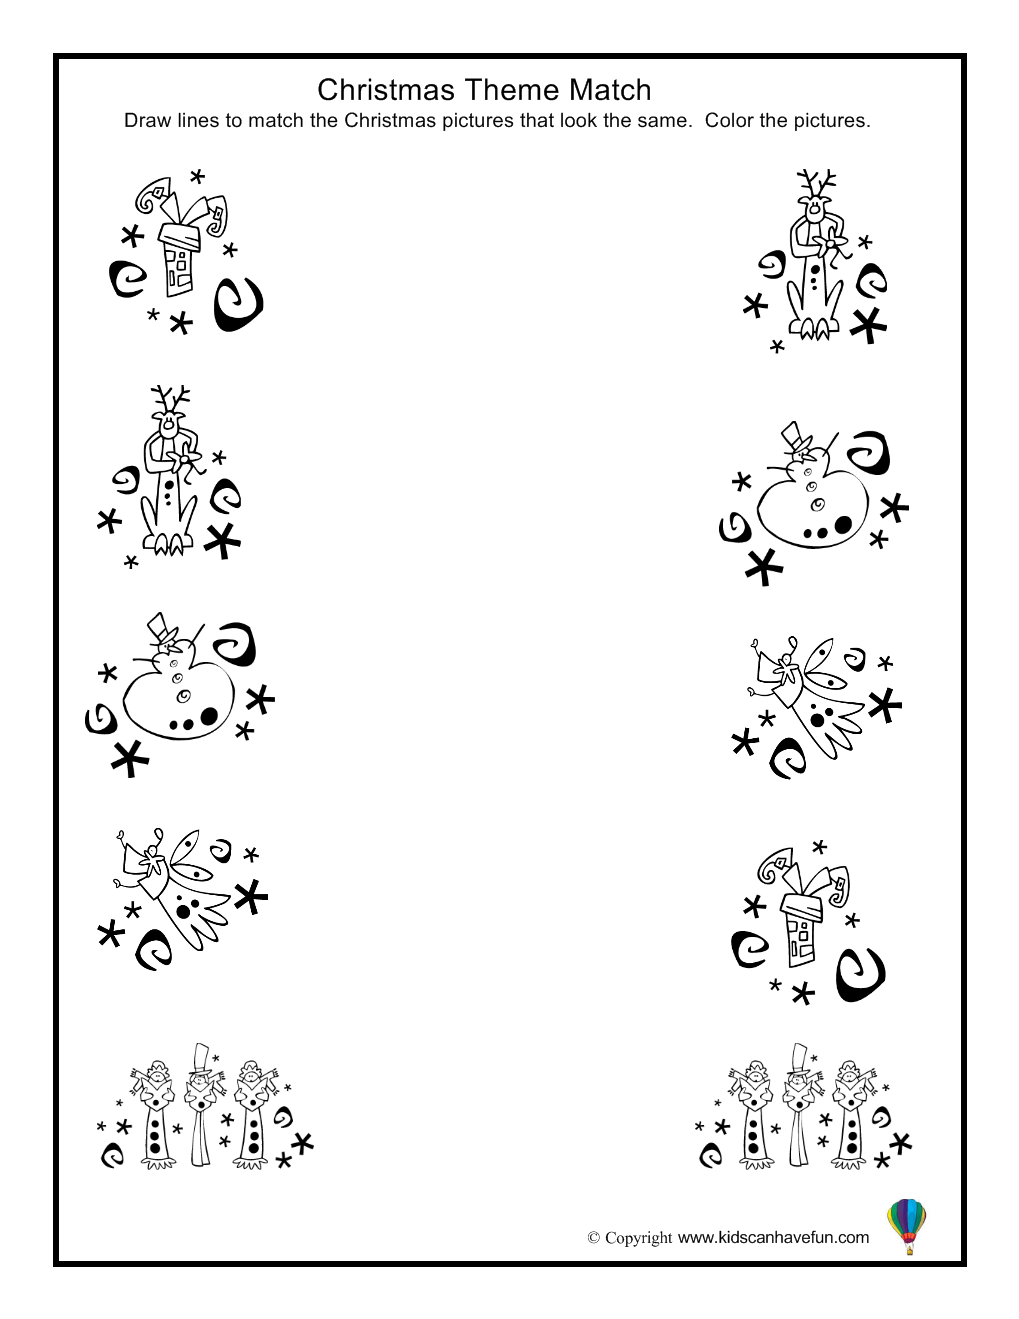 Pin On Christmas Activities With Diy Gift Ideas Games Worksheets Cards [ 1319 x 1019 Pixel ]